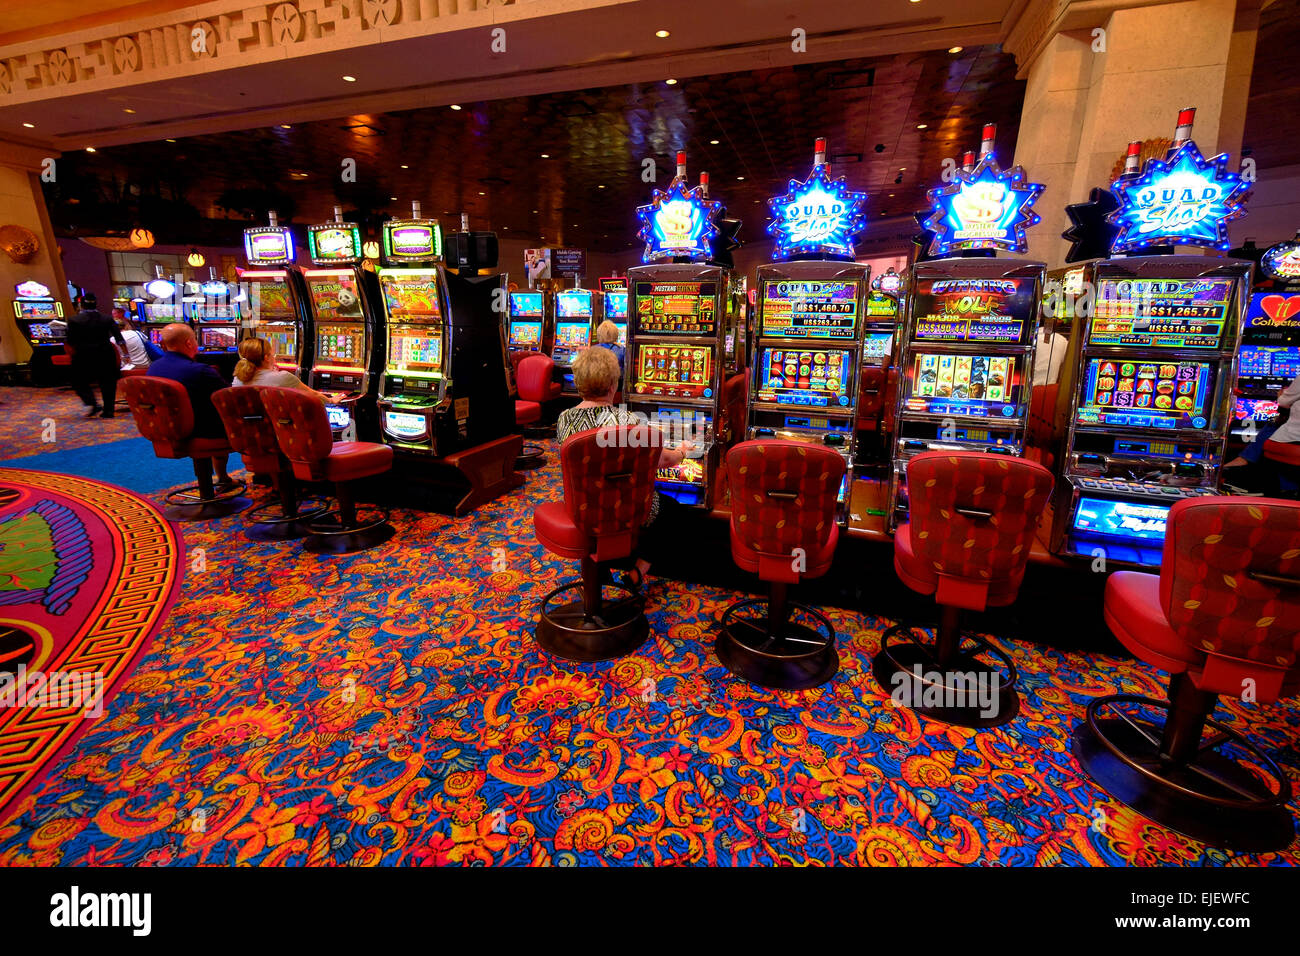 Southern cruise casino casinos at biloxi